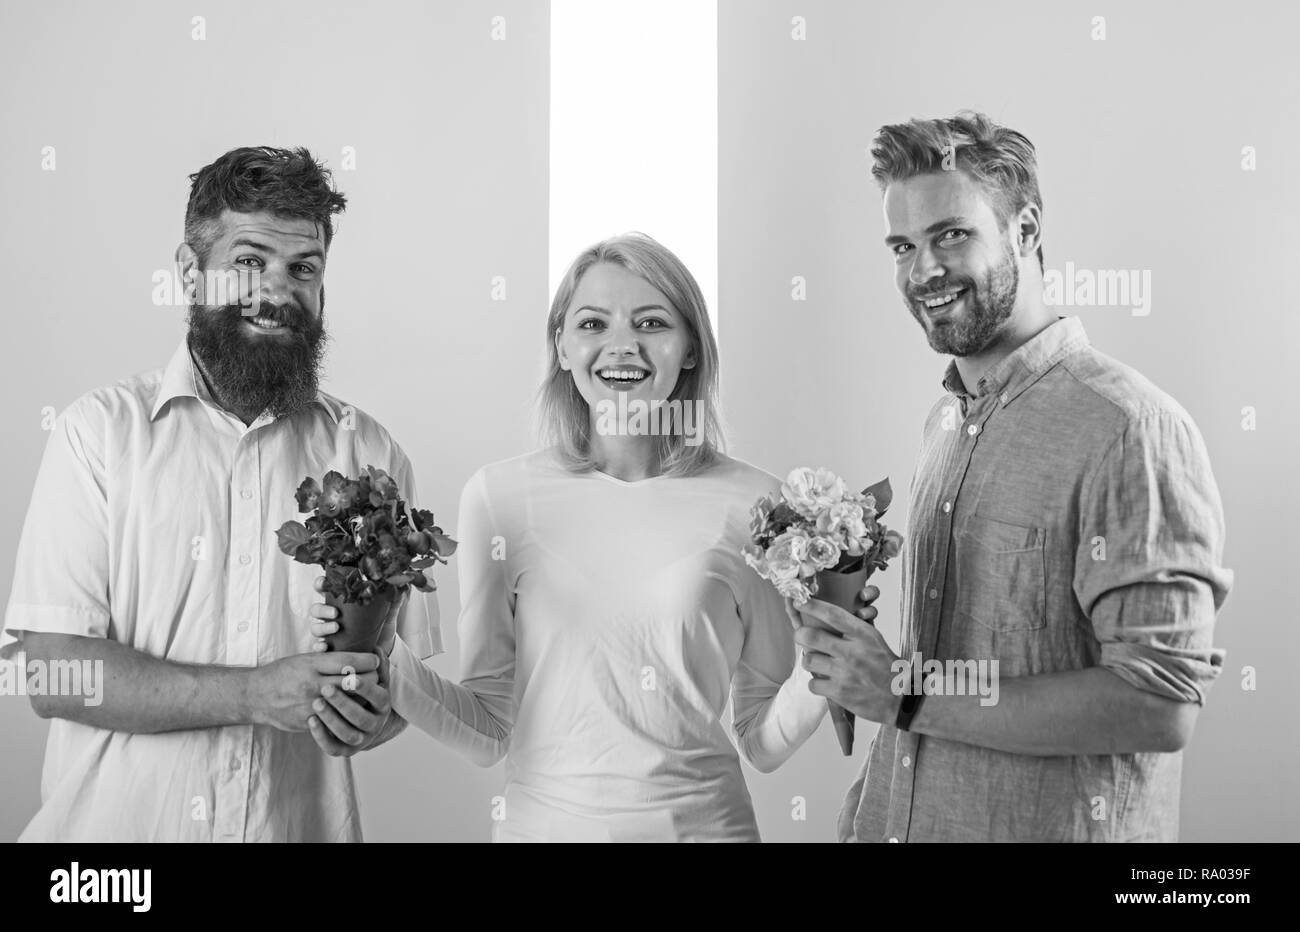 Girl popular receive lot men attention. Girl happy likes gifts. Love triangle. Men competitors with bouquets flowers try conquer girl. Woman smiling can not choose partner, grabs both bouquets. - Stock Image